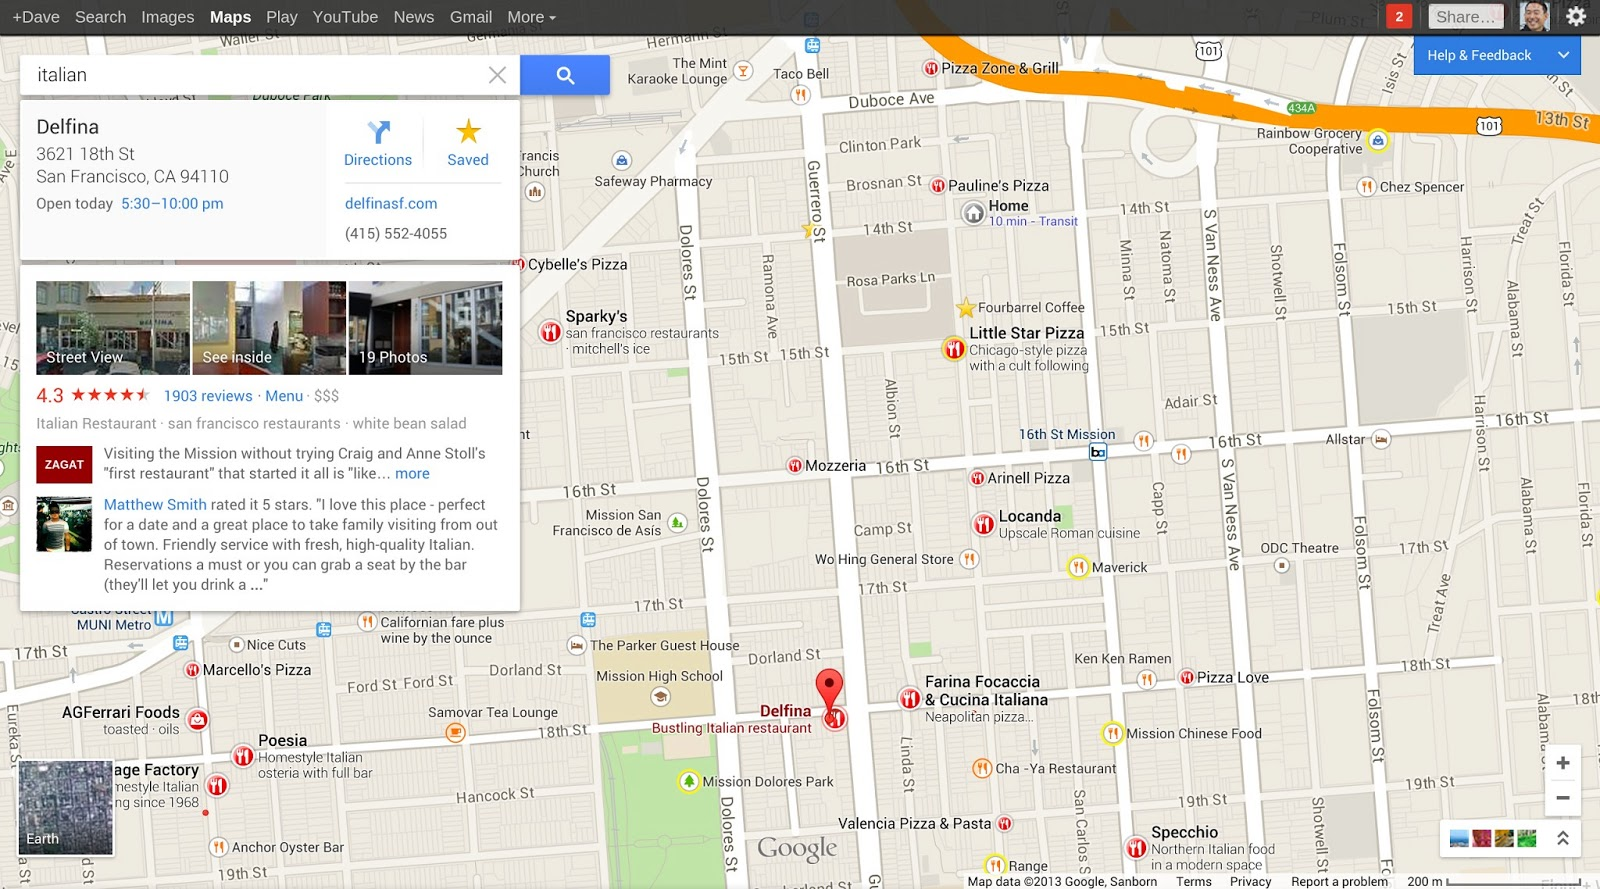 Clicking on a pin will bring up a information card with location information, street view pictures and reviews.